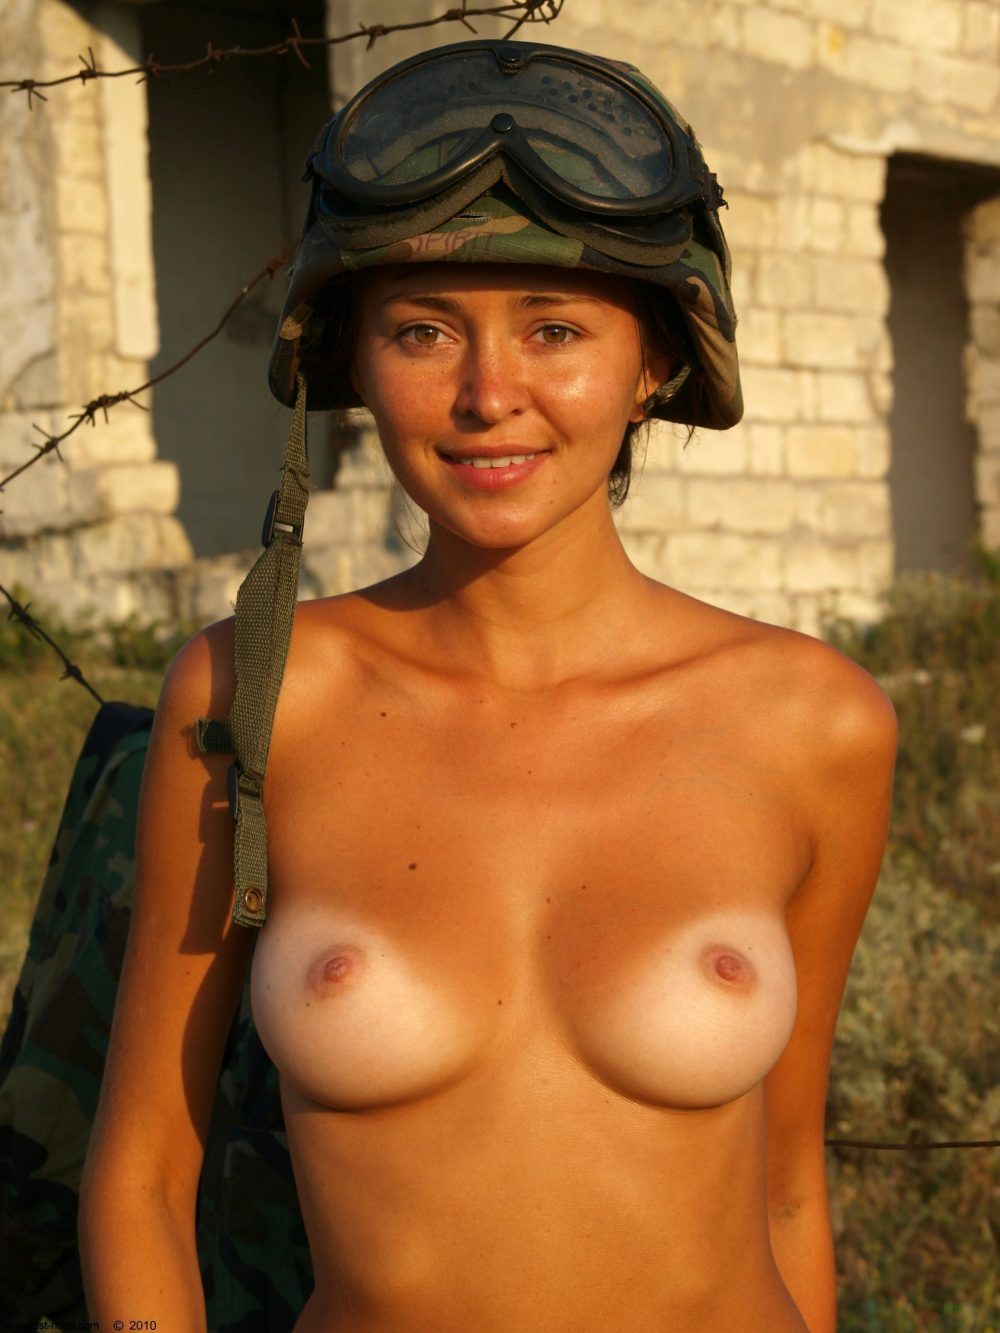 nude soldier 1000x1333 nude soldier